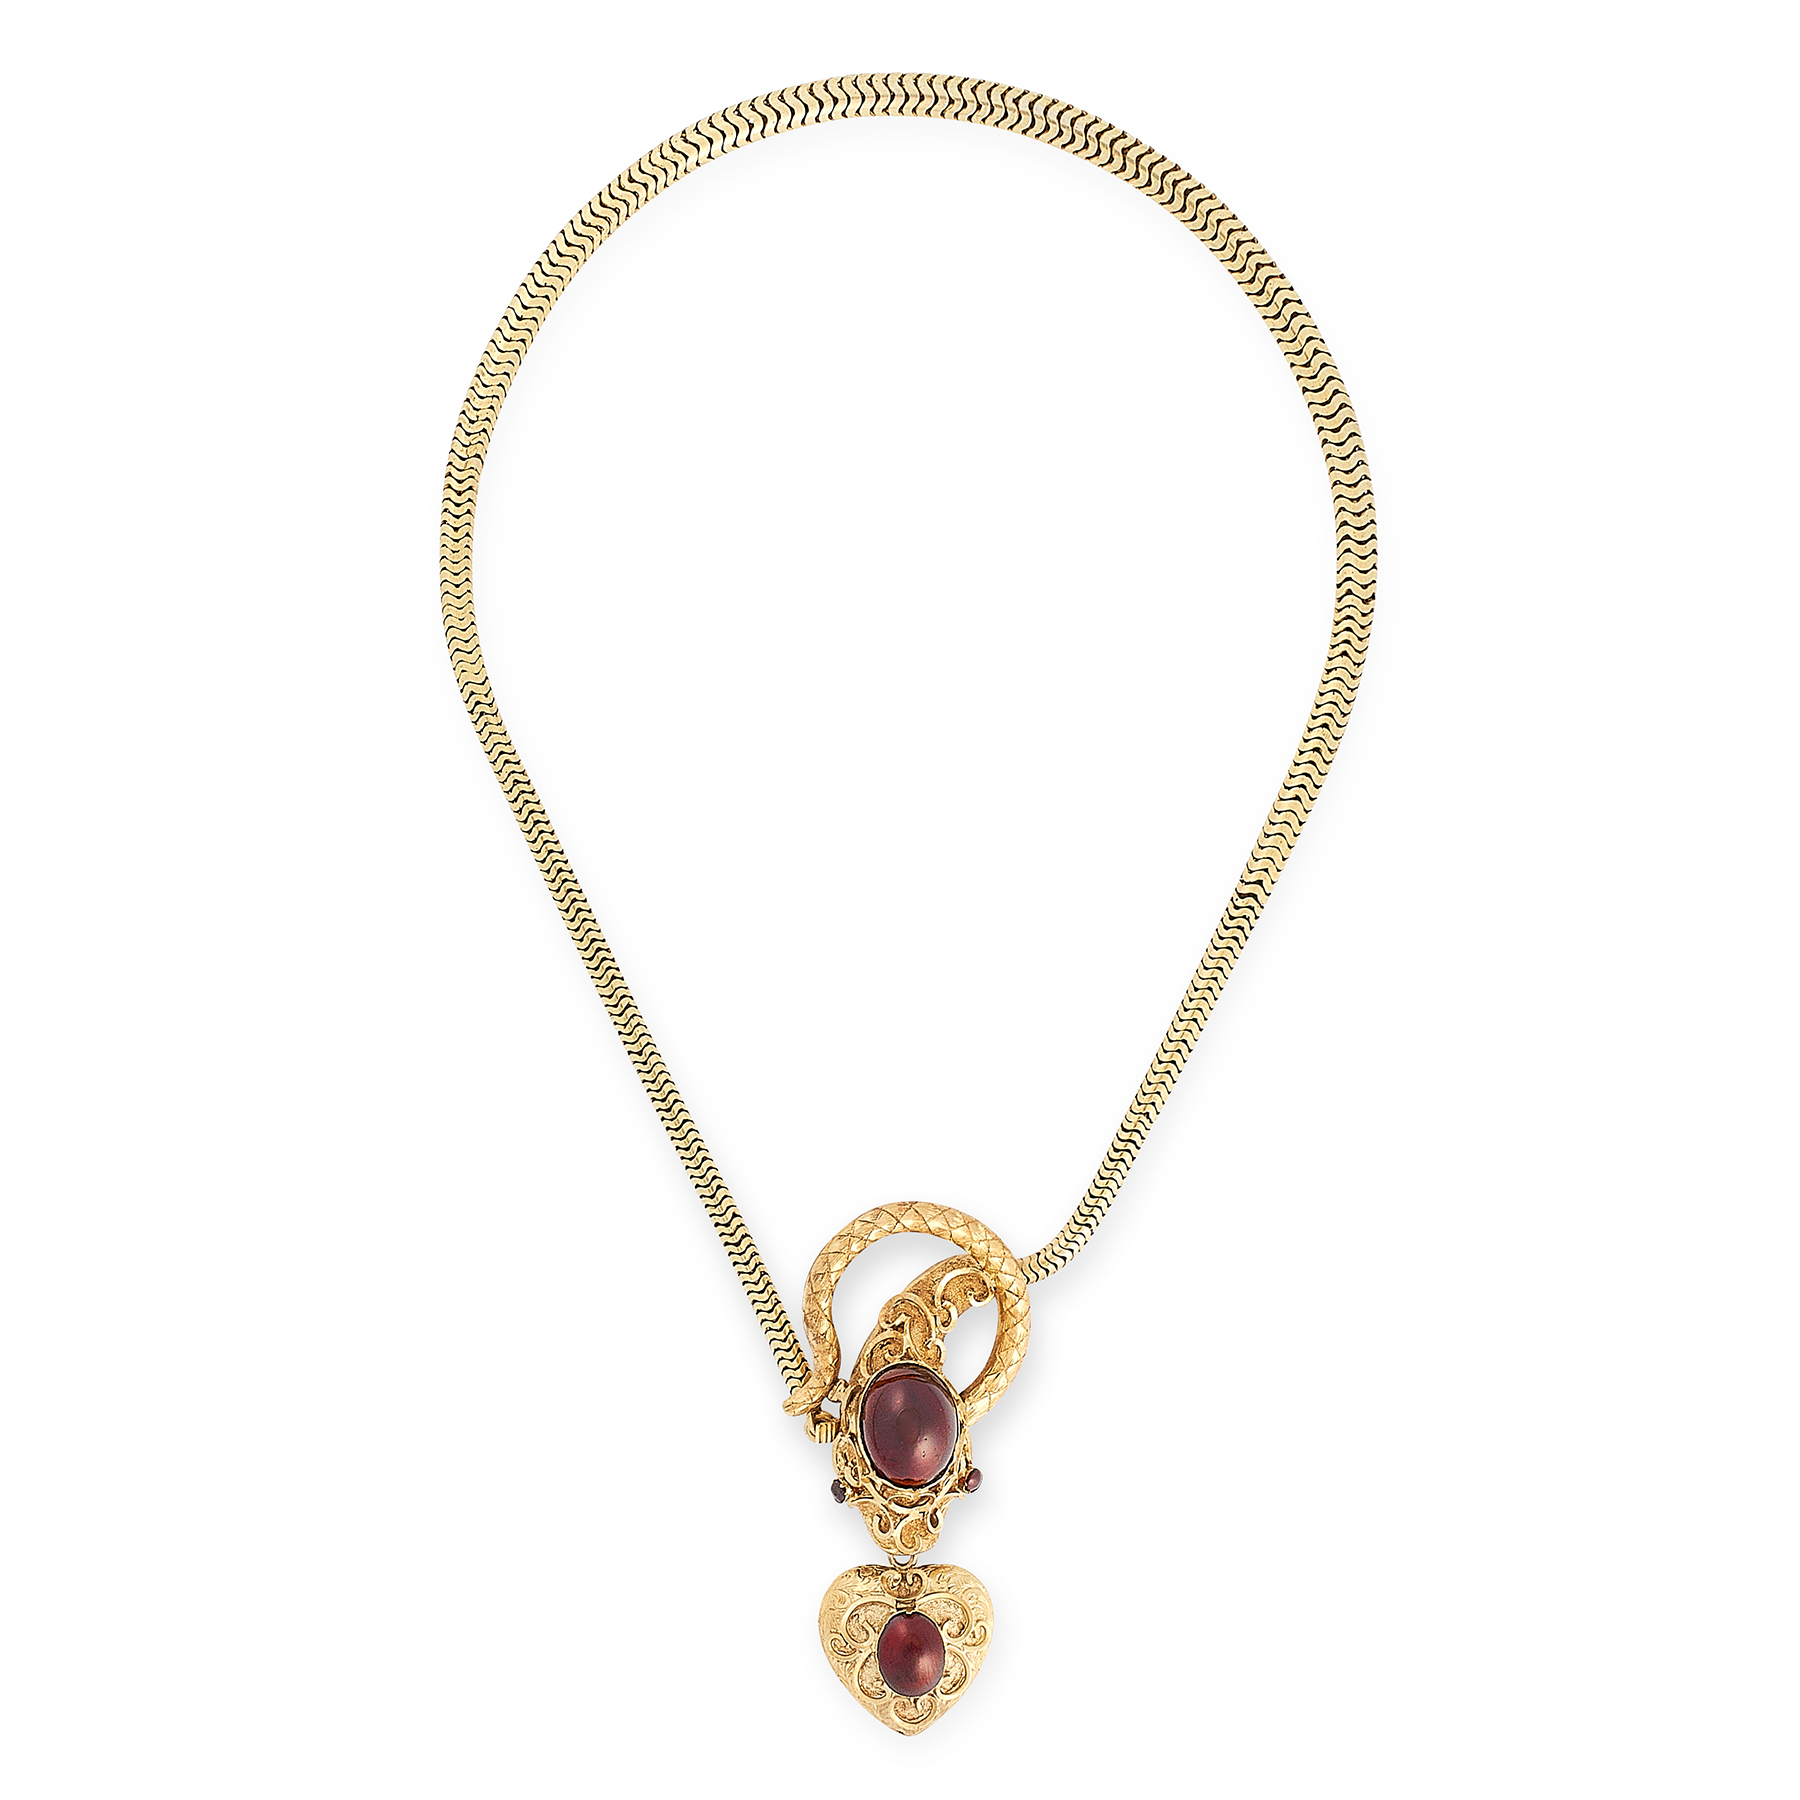 AN ANTIQUE GARNET MOURNING LOCKET SNAKE NECKLACE, 19TH CENTURY in yellow gold, the tapering chain